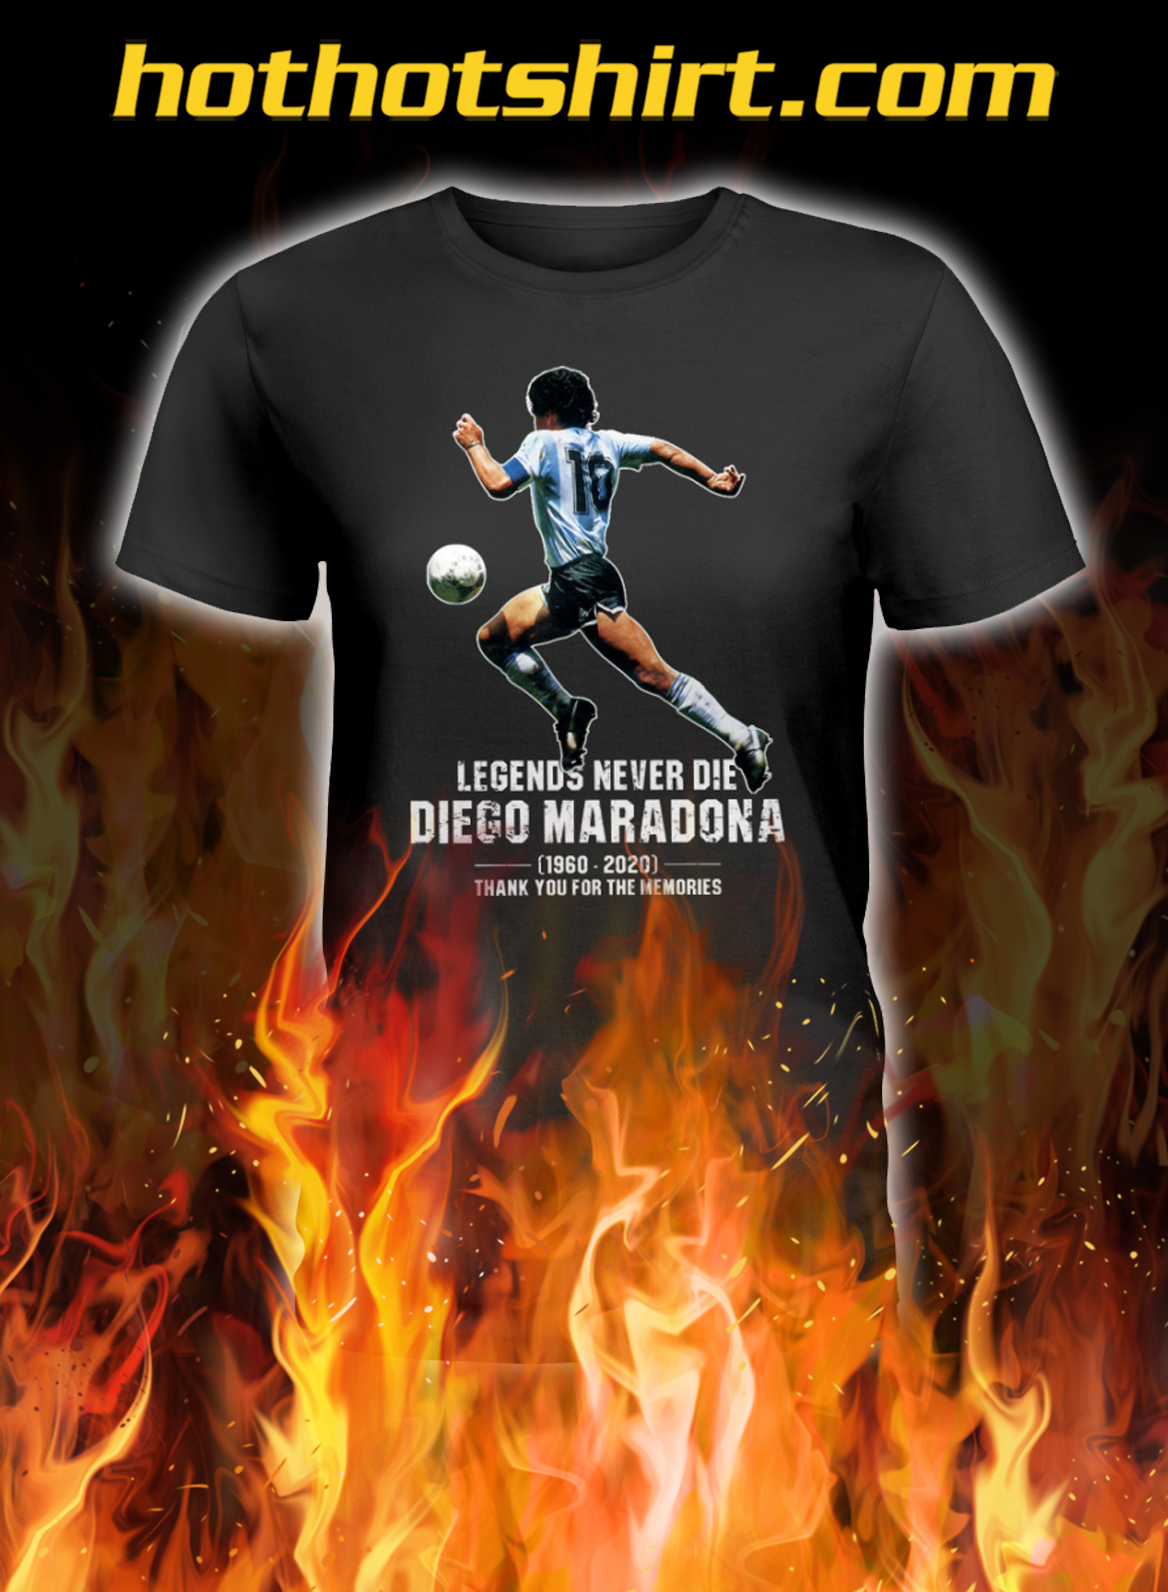 Legends never die Diego Maradona Thank you for the memories lady shirt